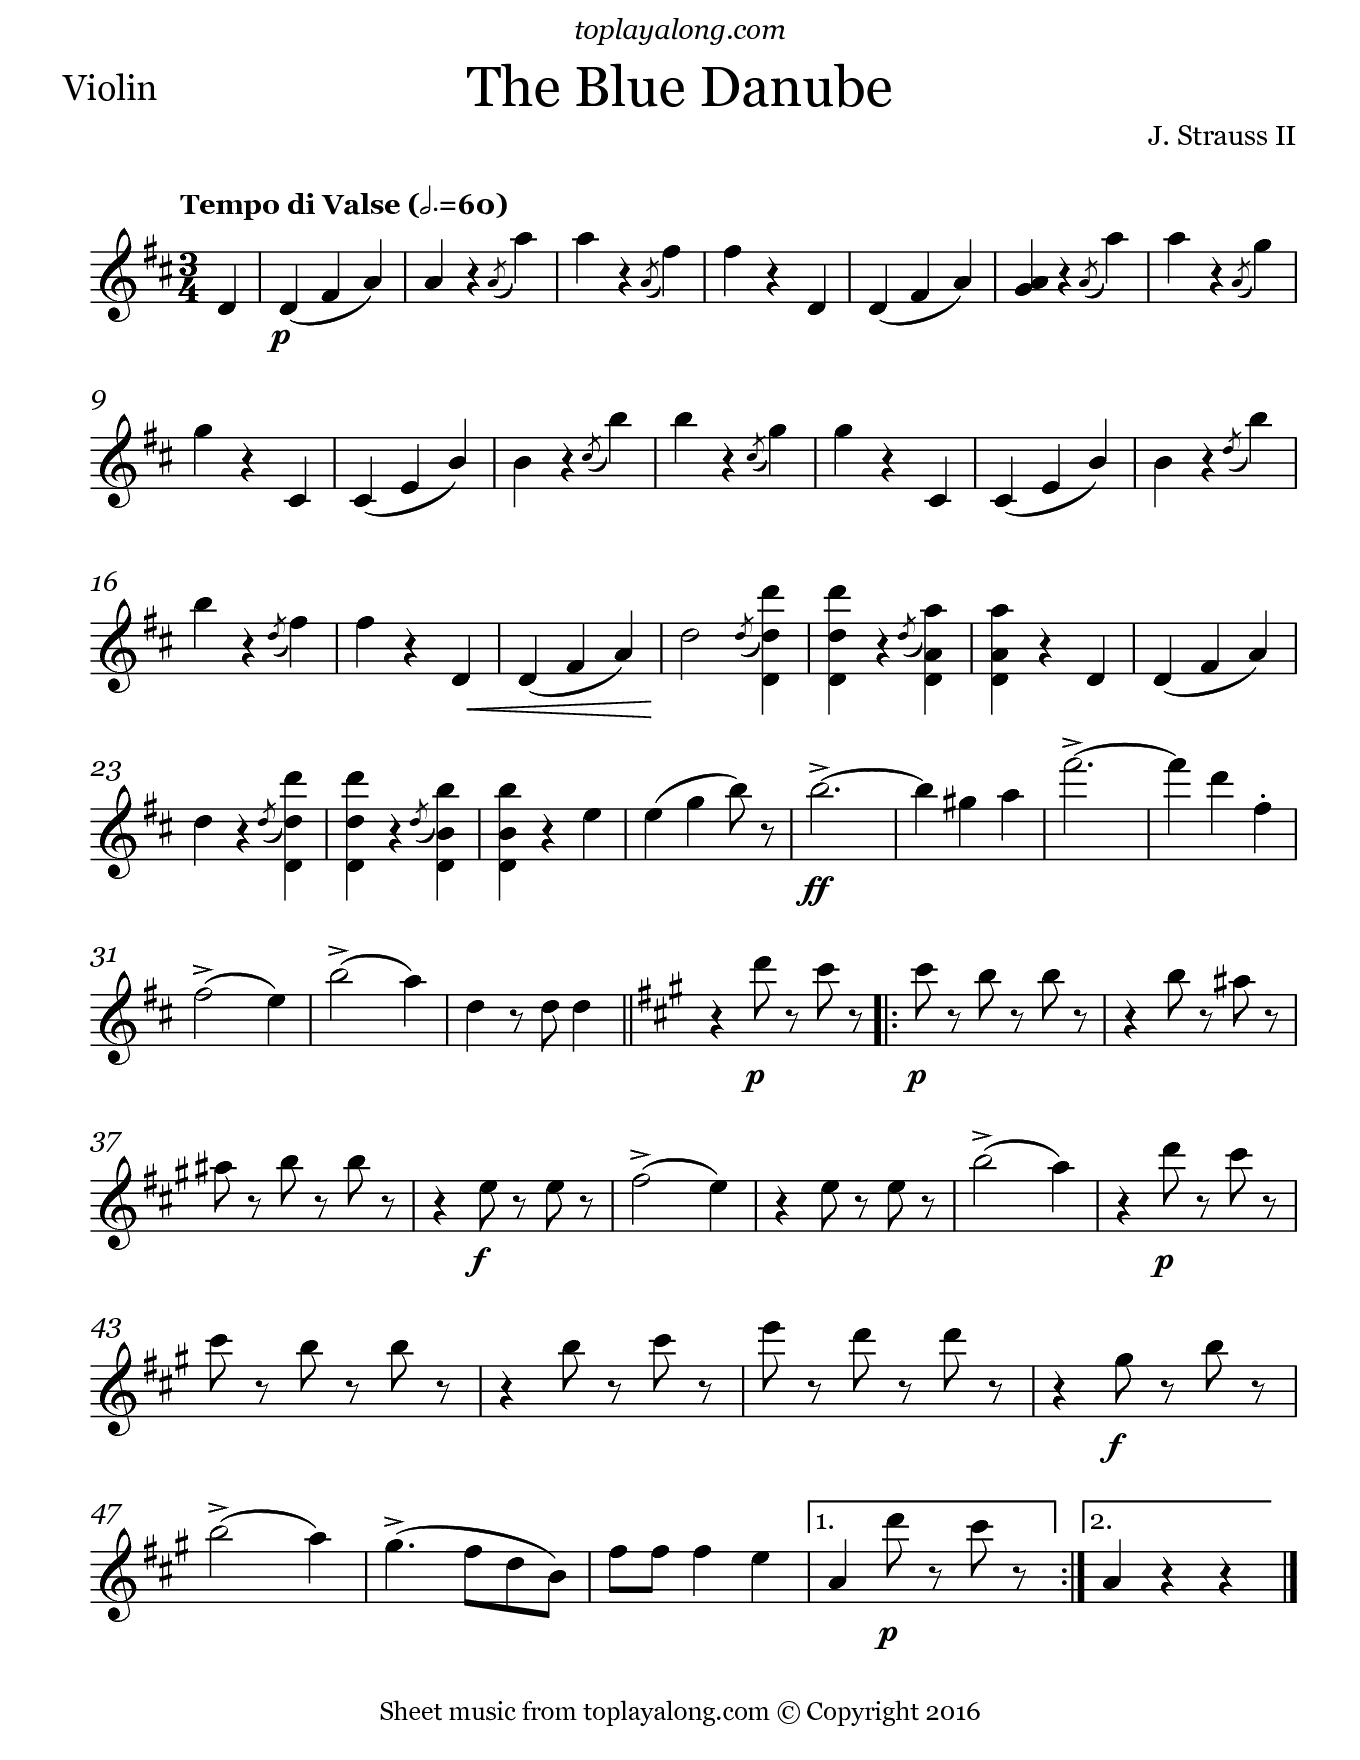 The Blue Danube Waltz by Strauss. Sheet music for Violin, page 1.